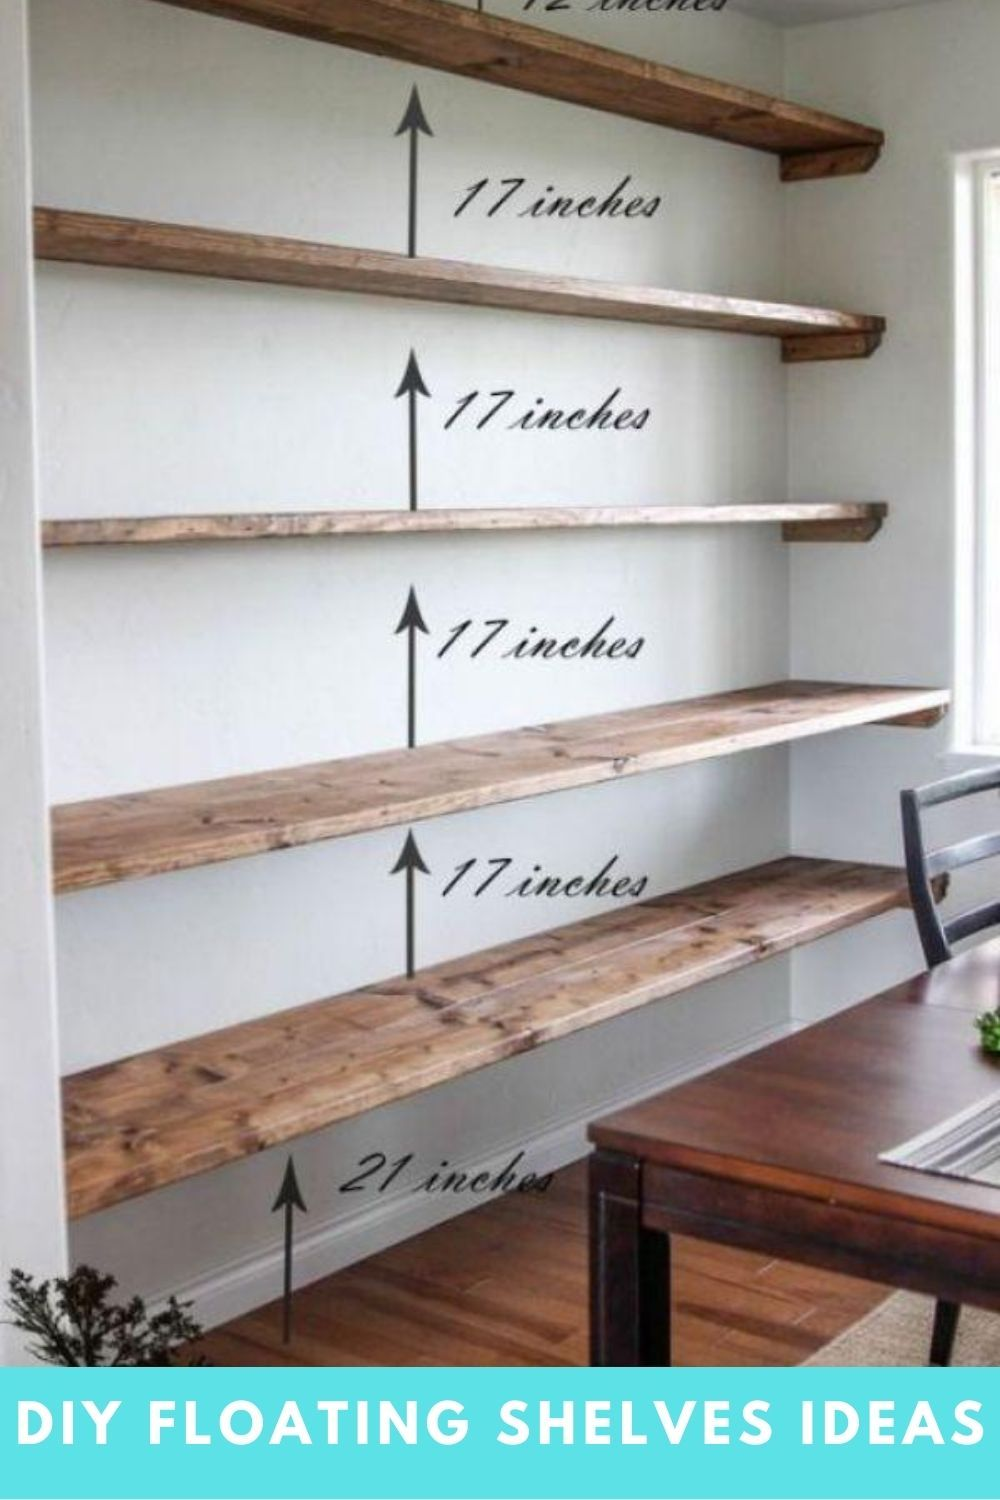 Pin On Diy Floating Shelves Ideas